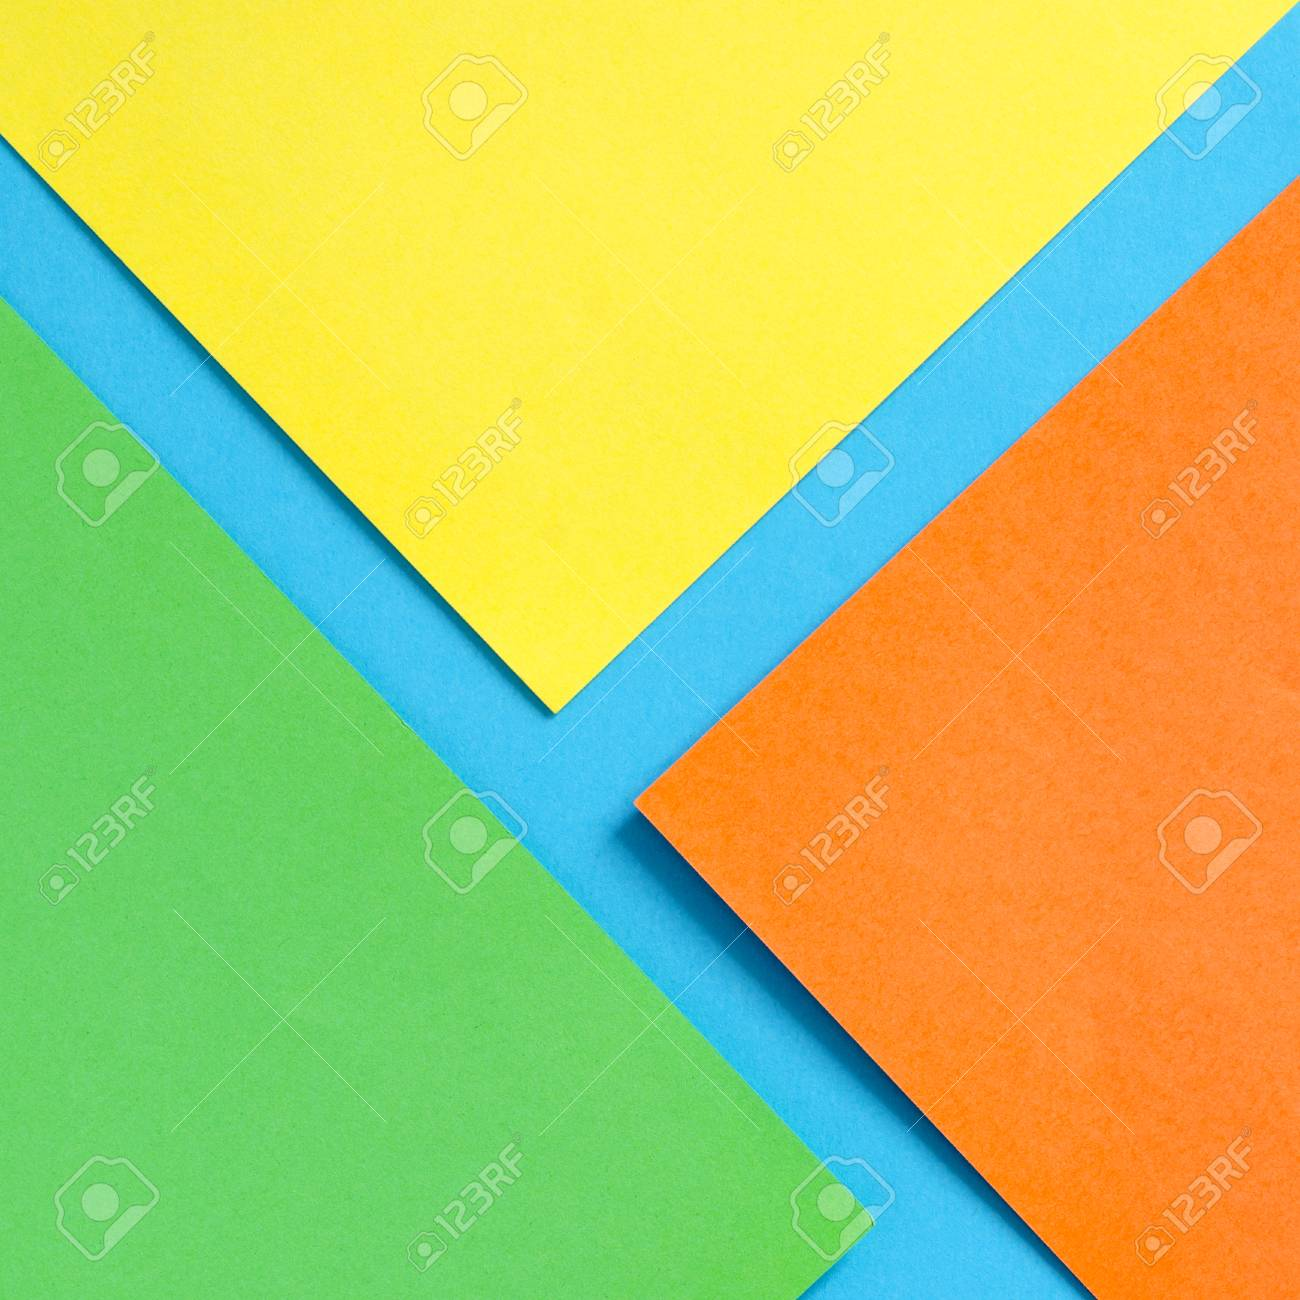 Blue Green Orange And Yellow Sheets Of Paper Abstract Background